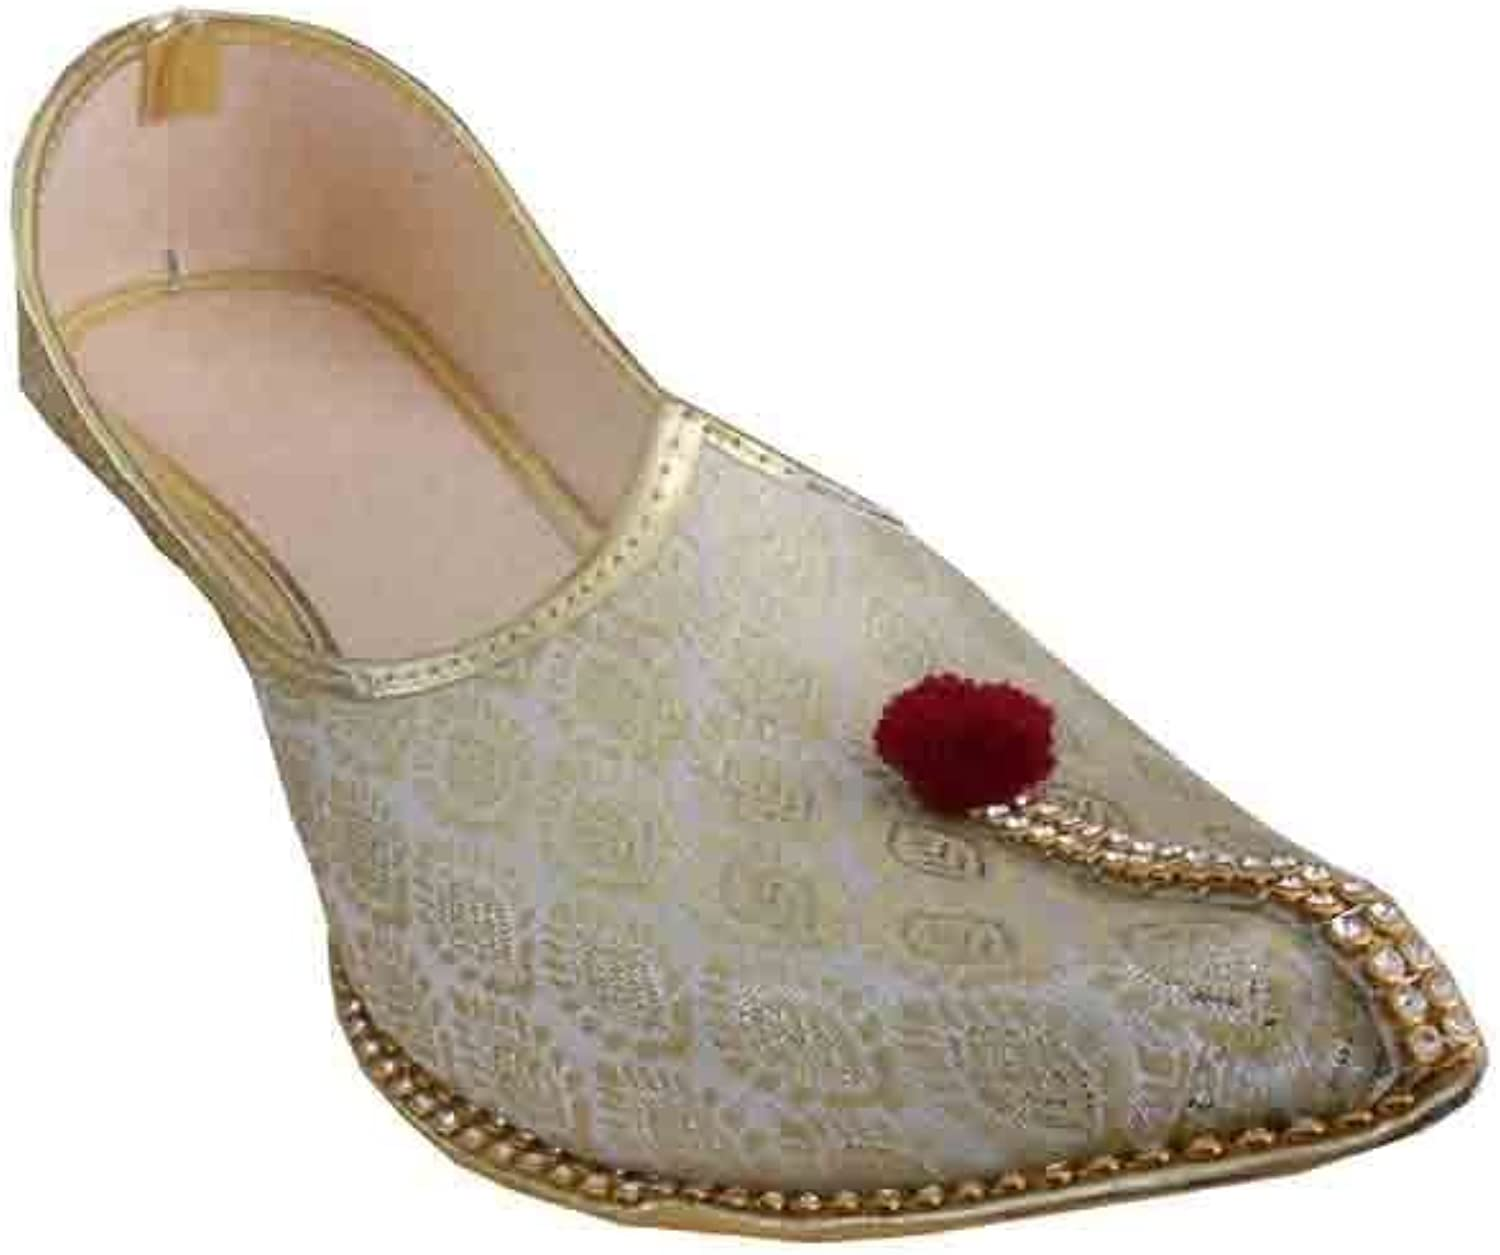 Kalra Creations Mojari Flip-Flops Groom Khussa Handmade Punjabi Men shoes